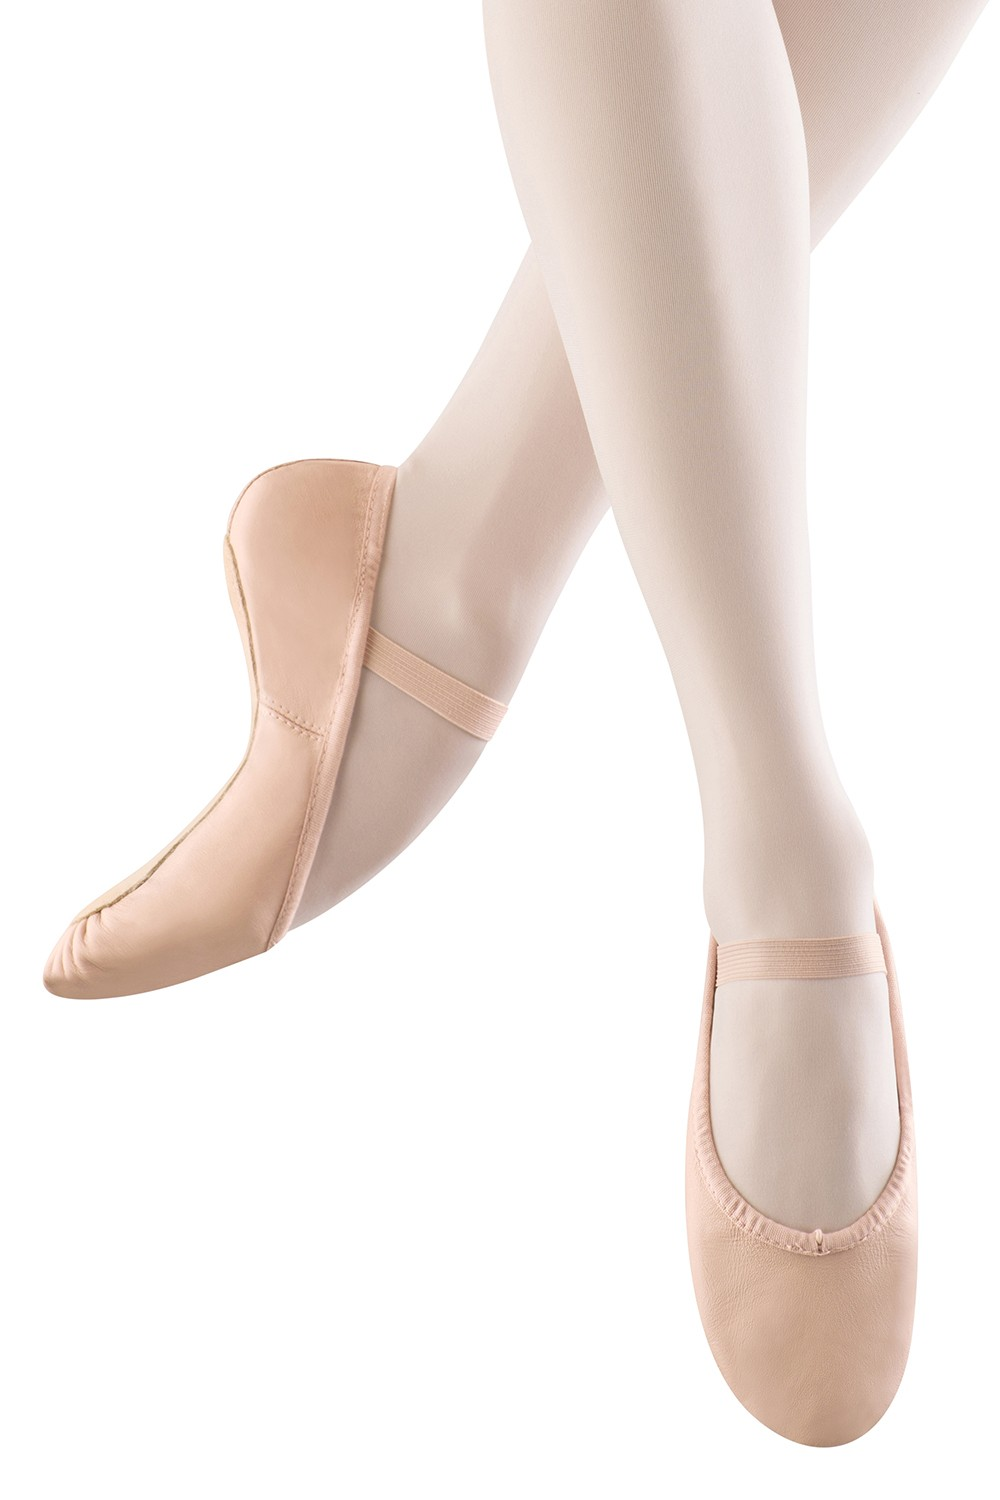 Dansoft - Toddler Girl's Ballet Shoes